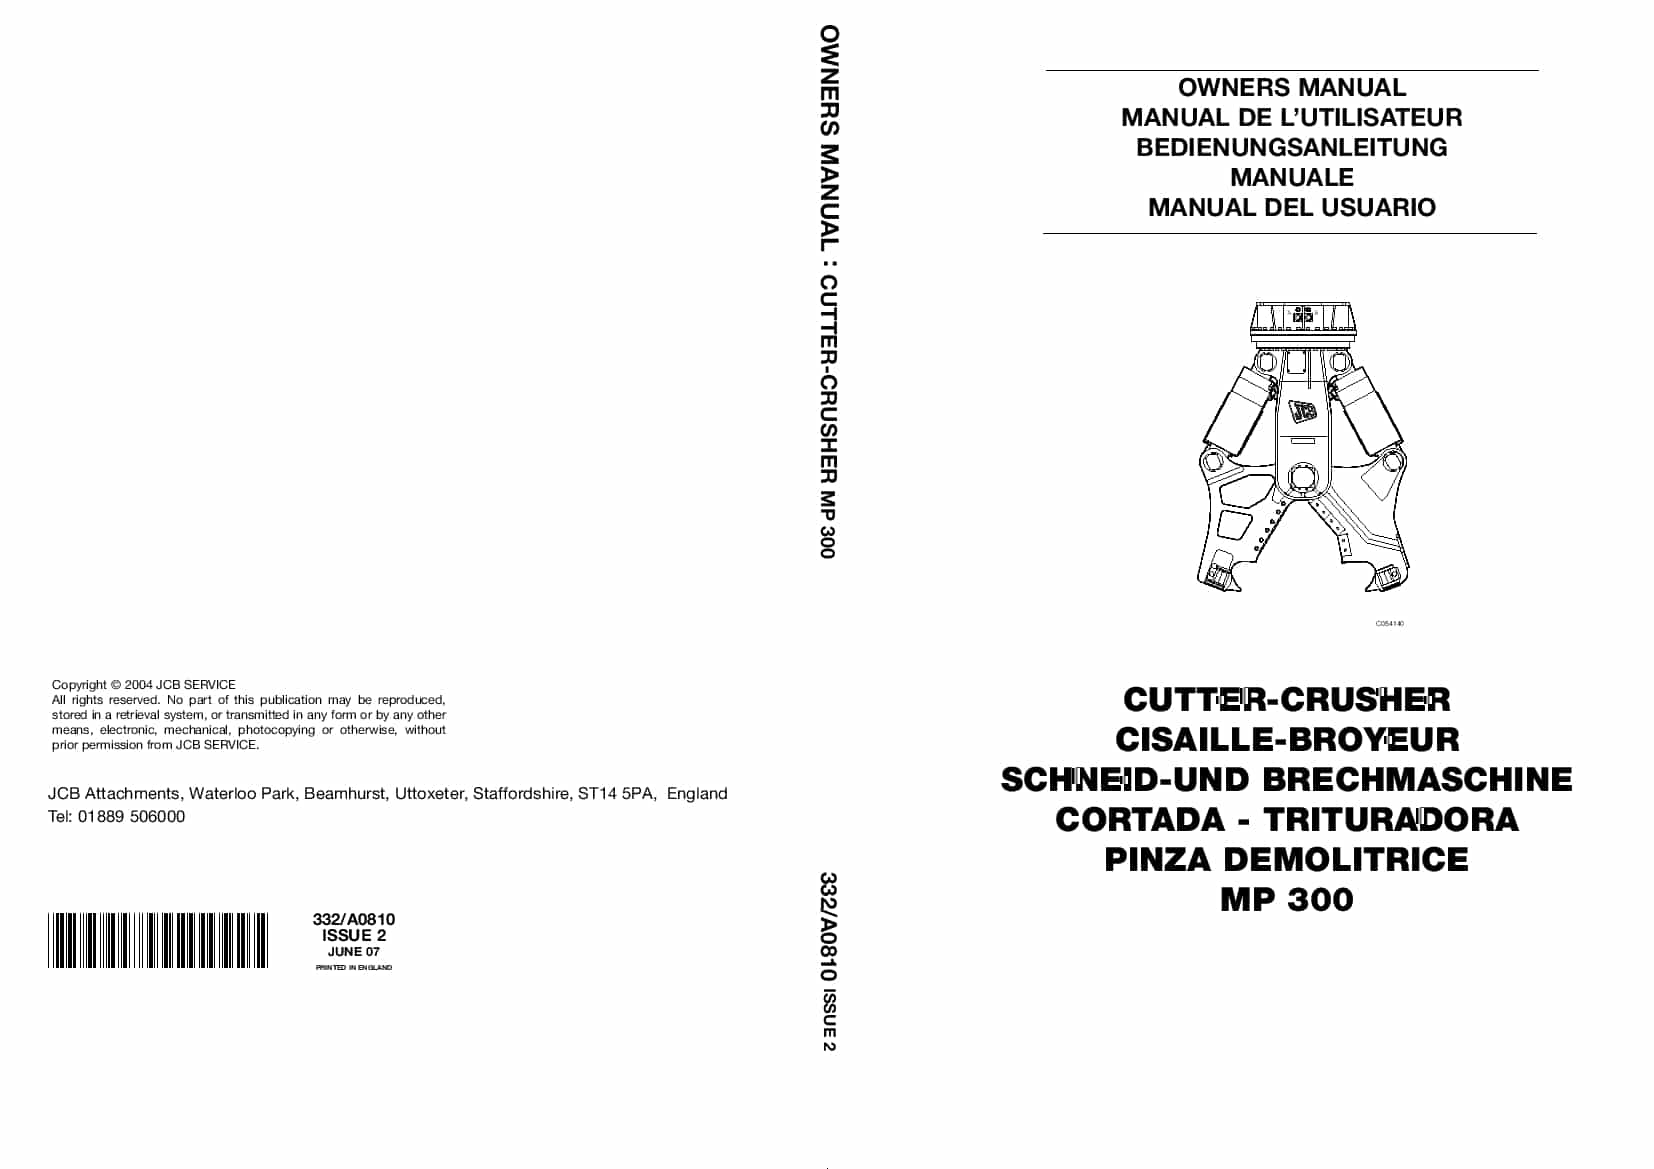 JCB MP 300 Cutler-Crusher Operation and Maintenance Manual